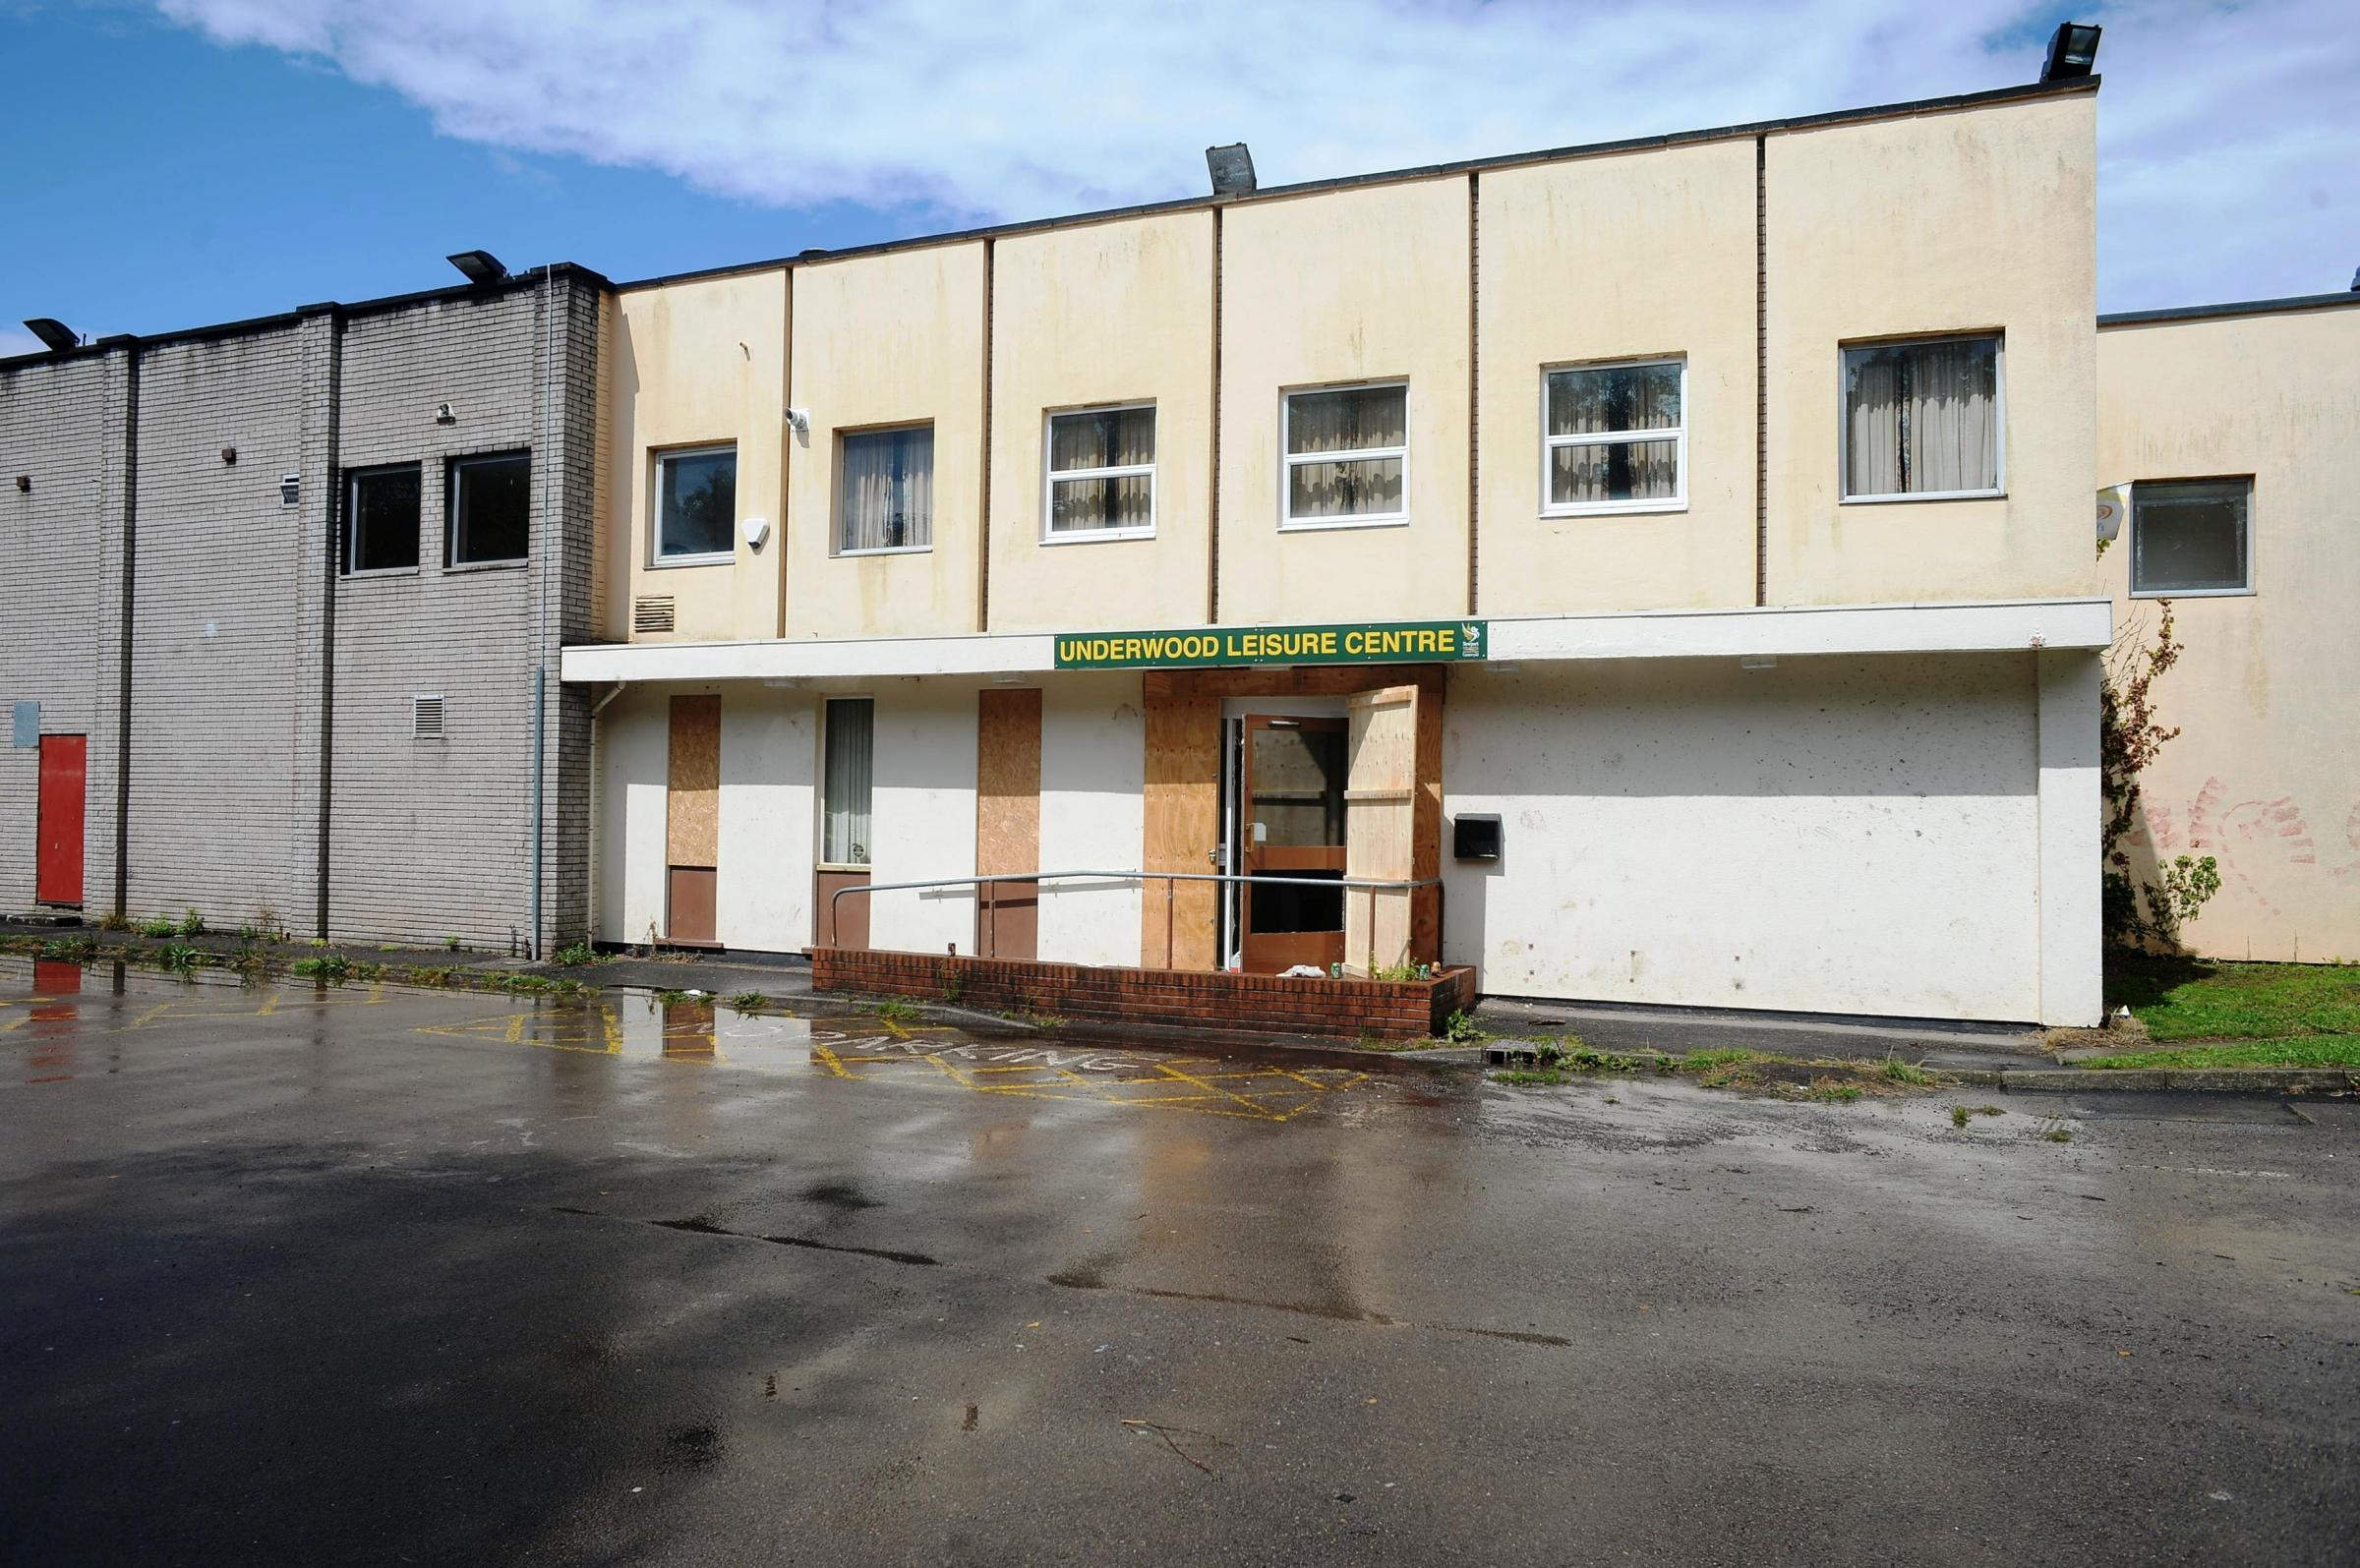 Plans to convert former leisure centre and site of £1.6m cannabis farm into community hub back on the cards - South Wales Argus